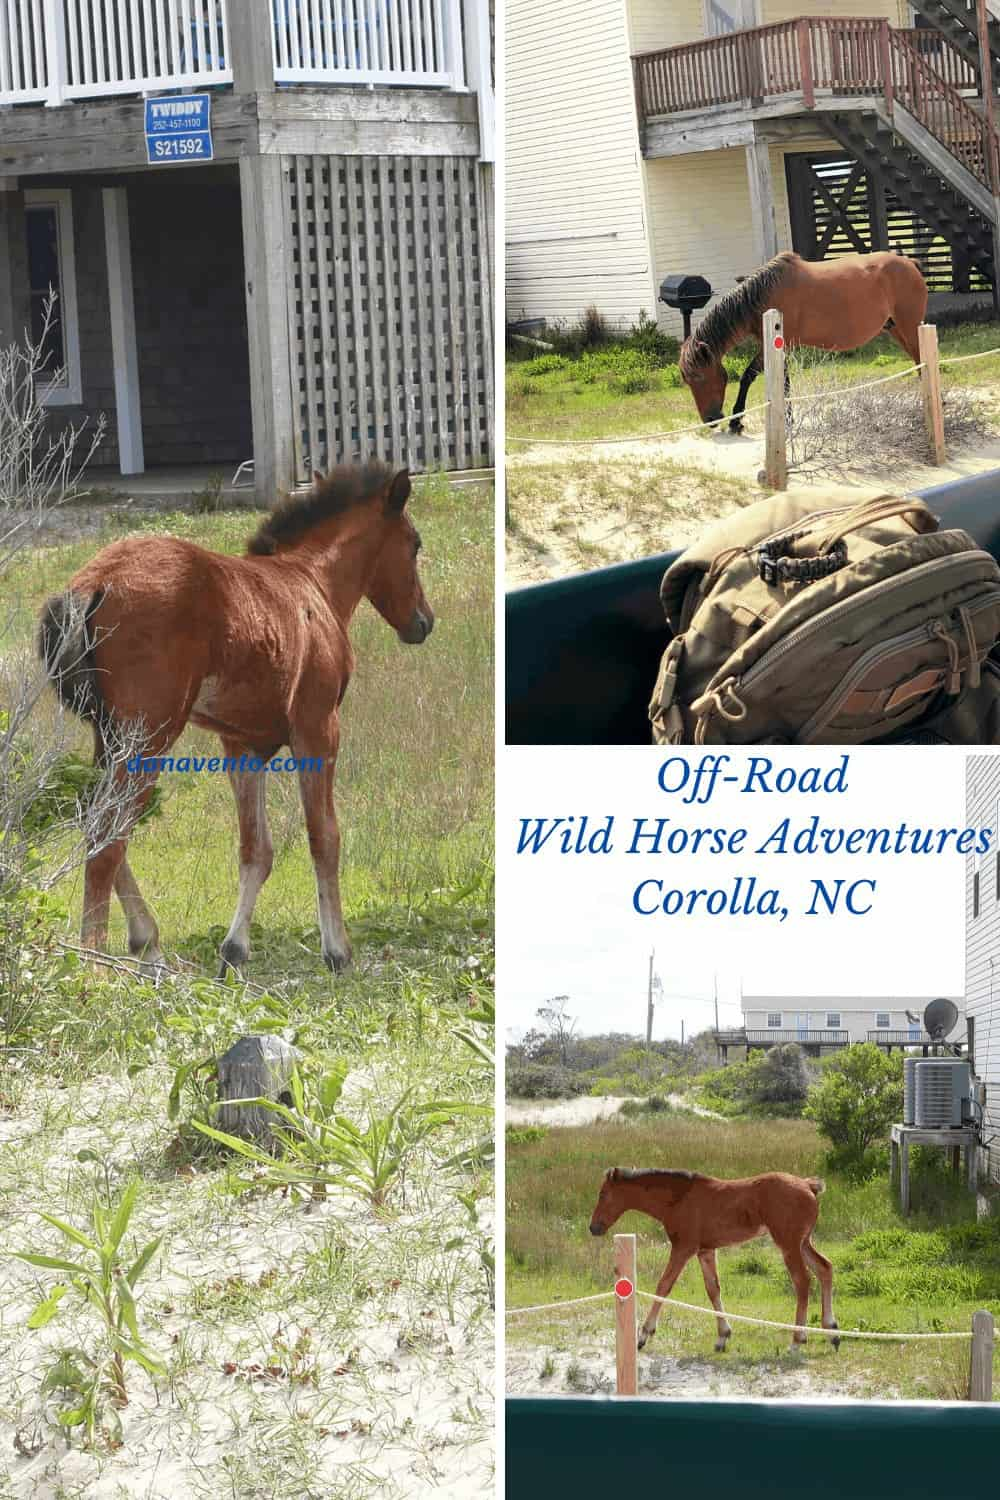 Wild Spanish Colonial Mustangs in a yard off of Carova Beach a 4x4 Community of rentals